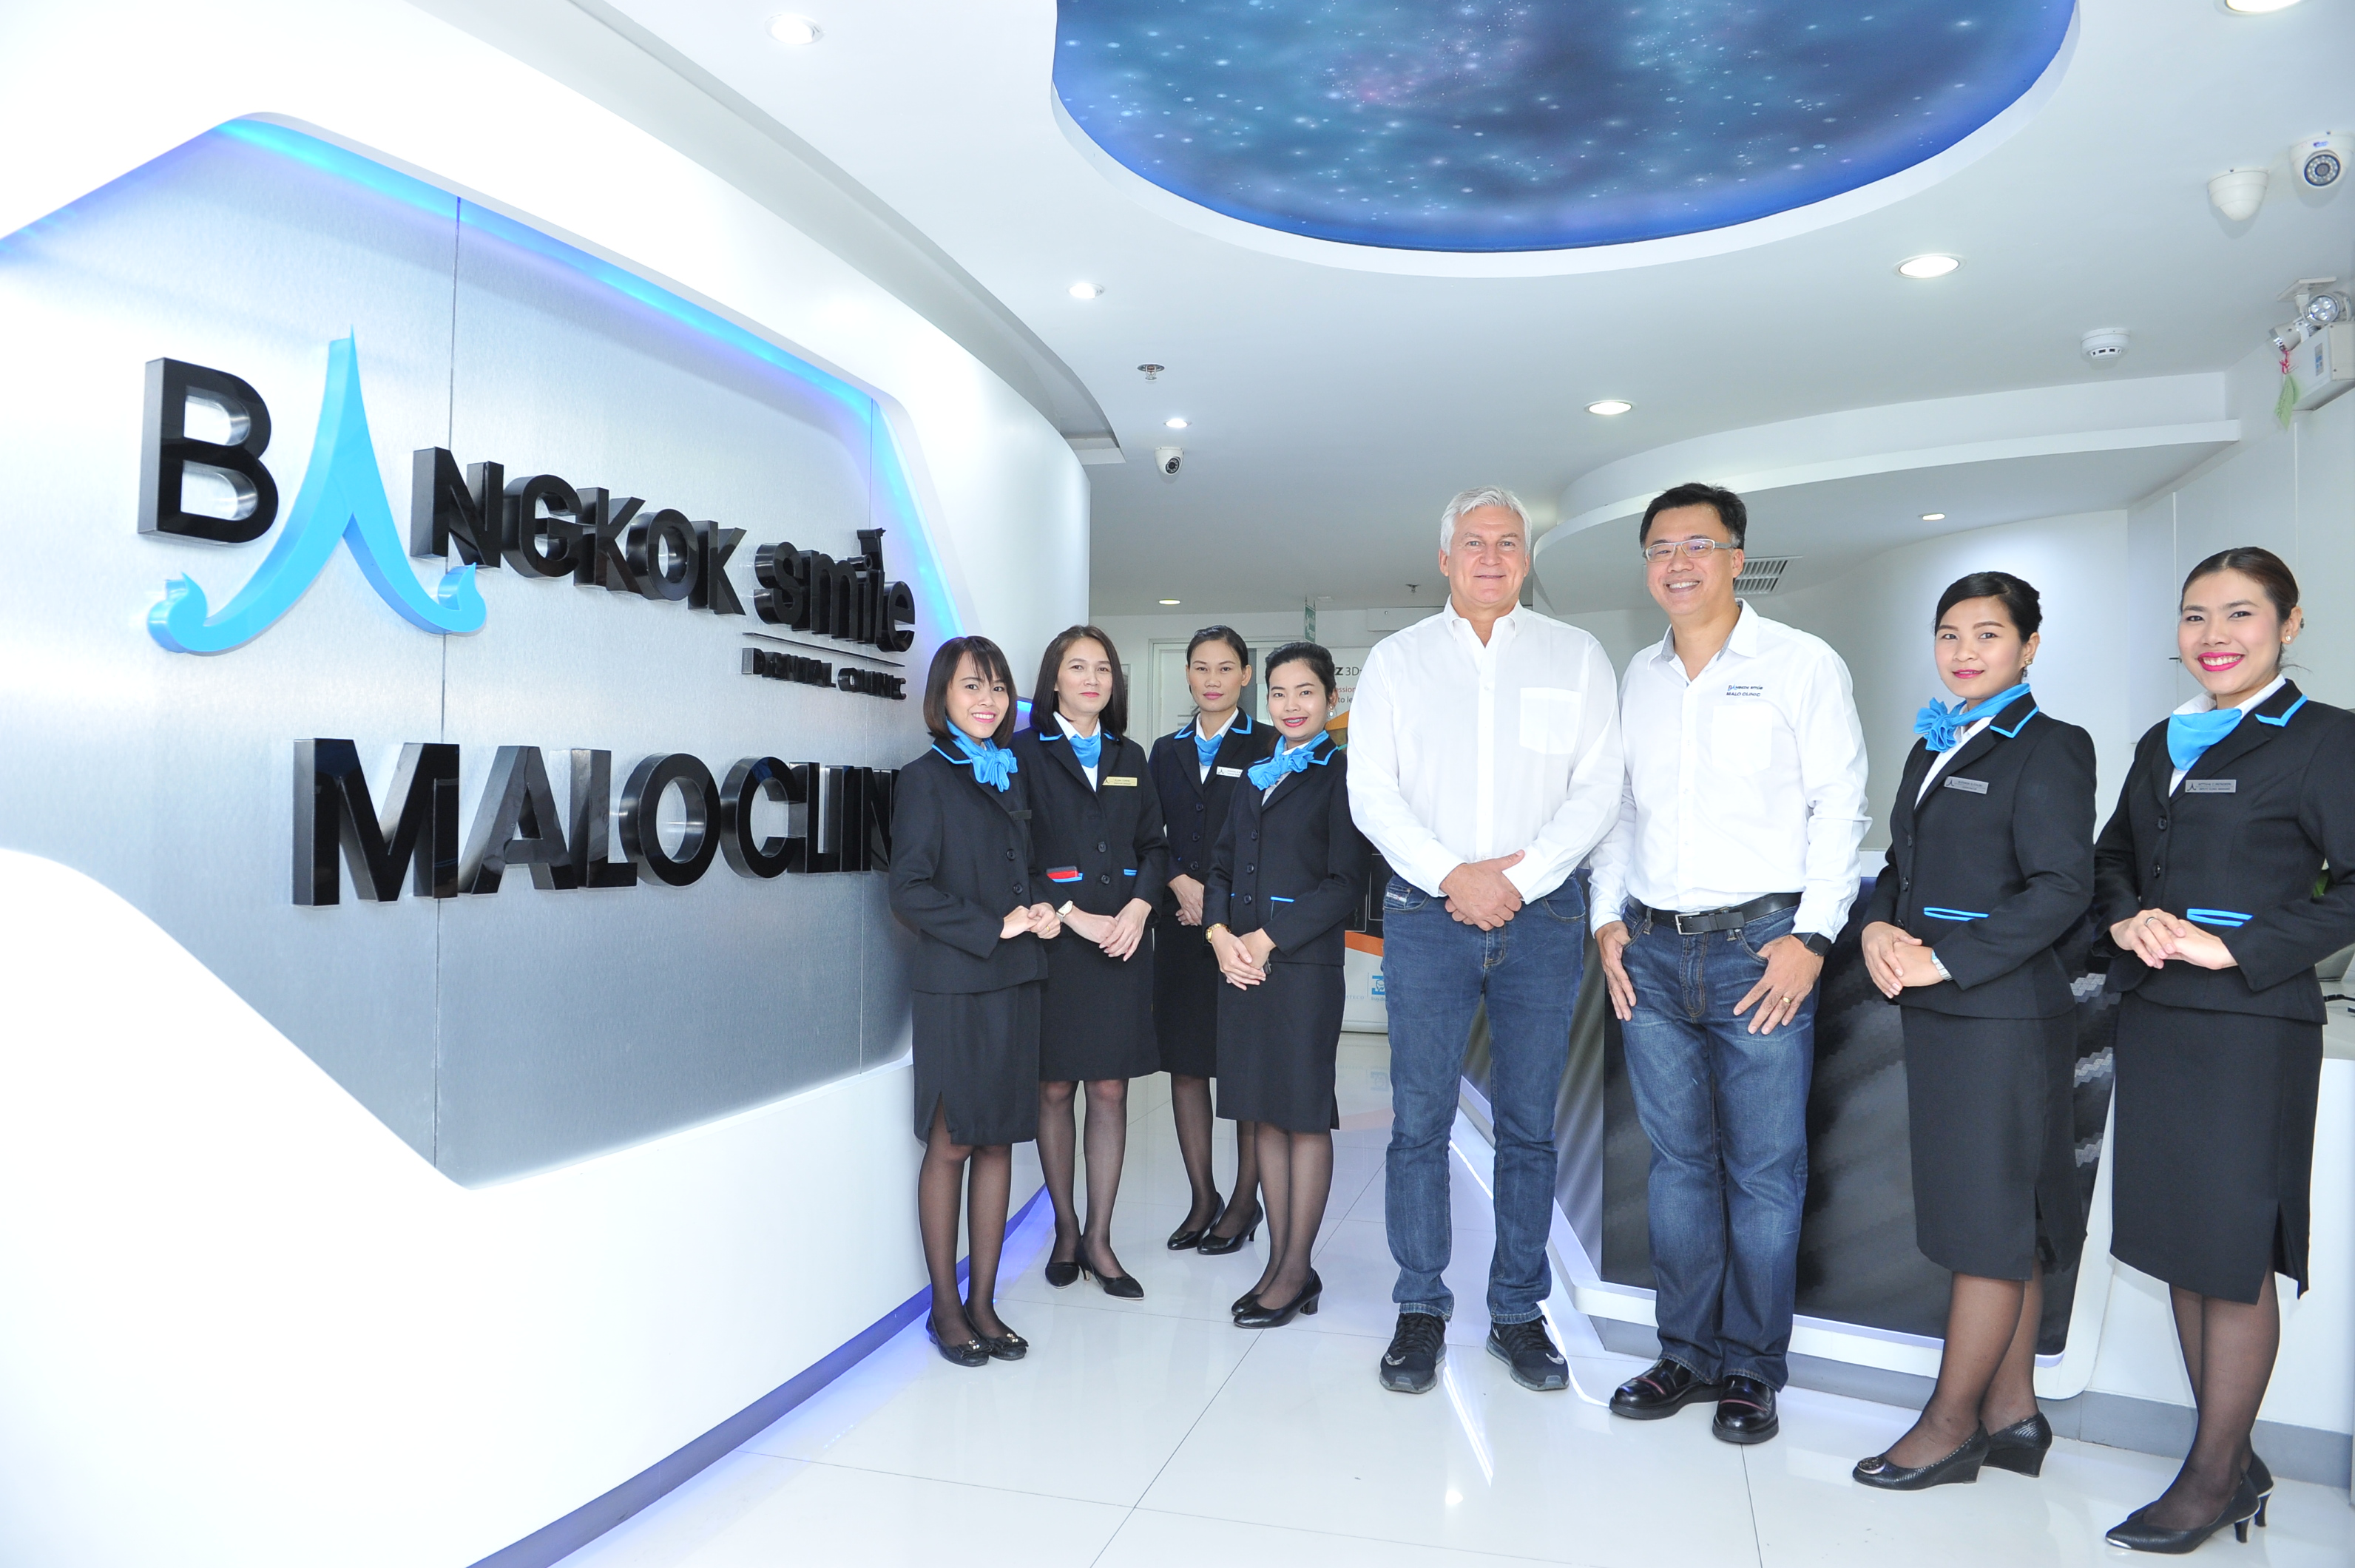 Bangkok Smile Malo Clinic Headquarters (Soi Sukhumvit 5)